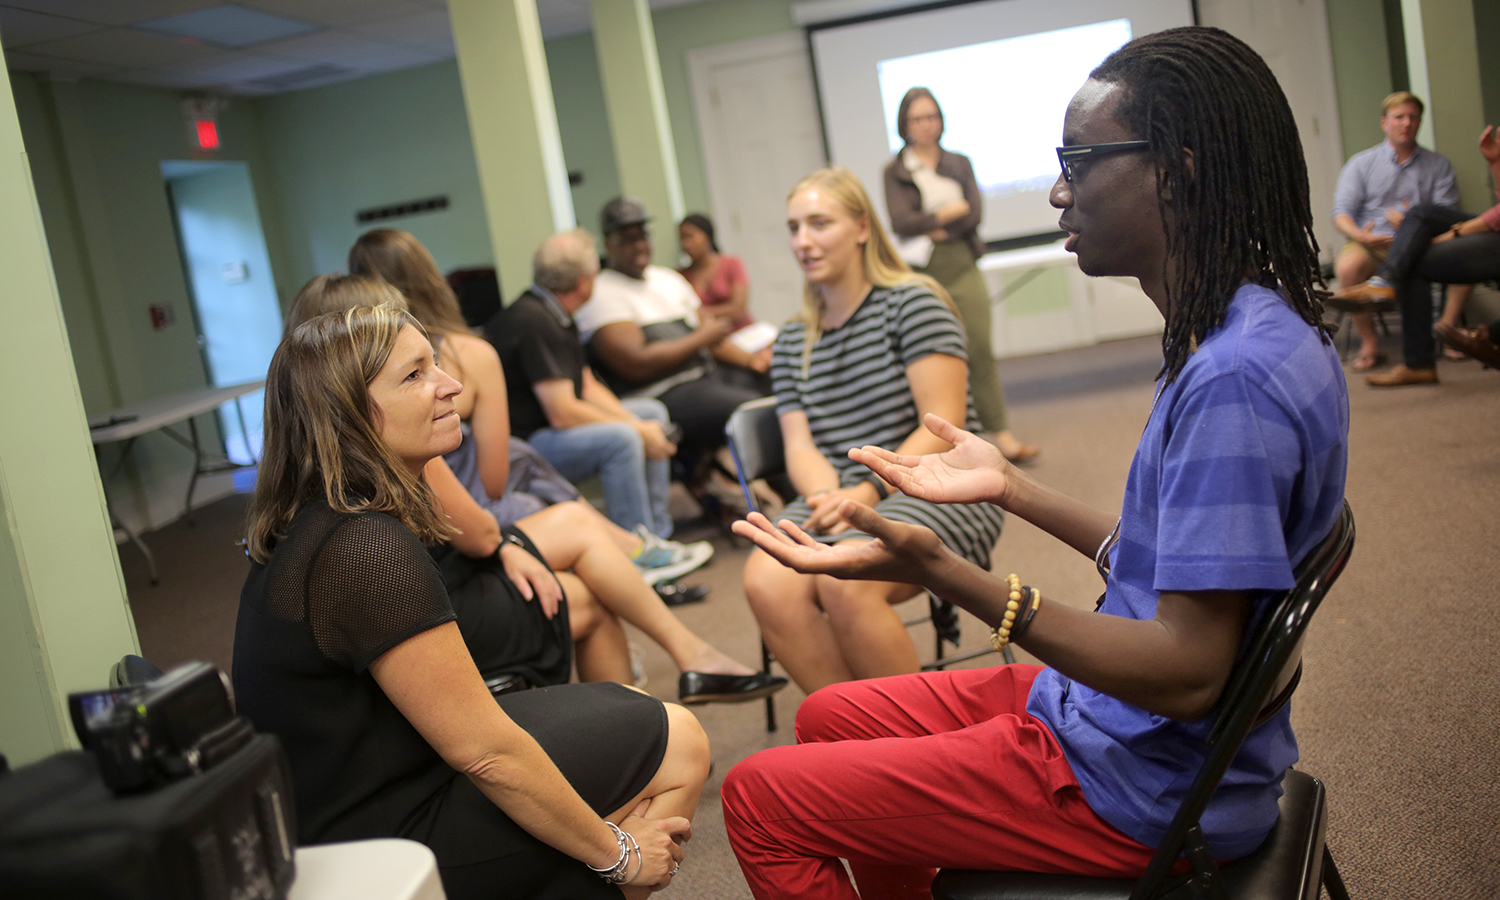 Jen Harris of the Education Department and Brandon Bryant, a former resident of Geneva and a member of Tools for Social Change! discuss language, race and education during a Fisher Center event Our Schools: Building an Anti-Bias Classroom.